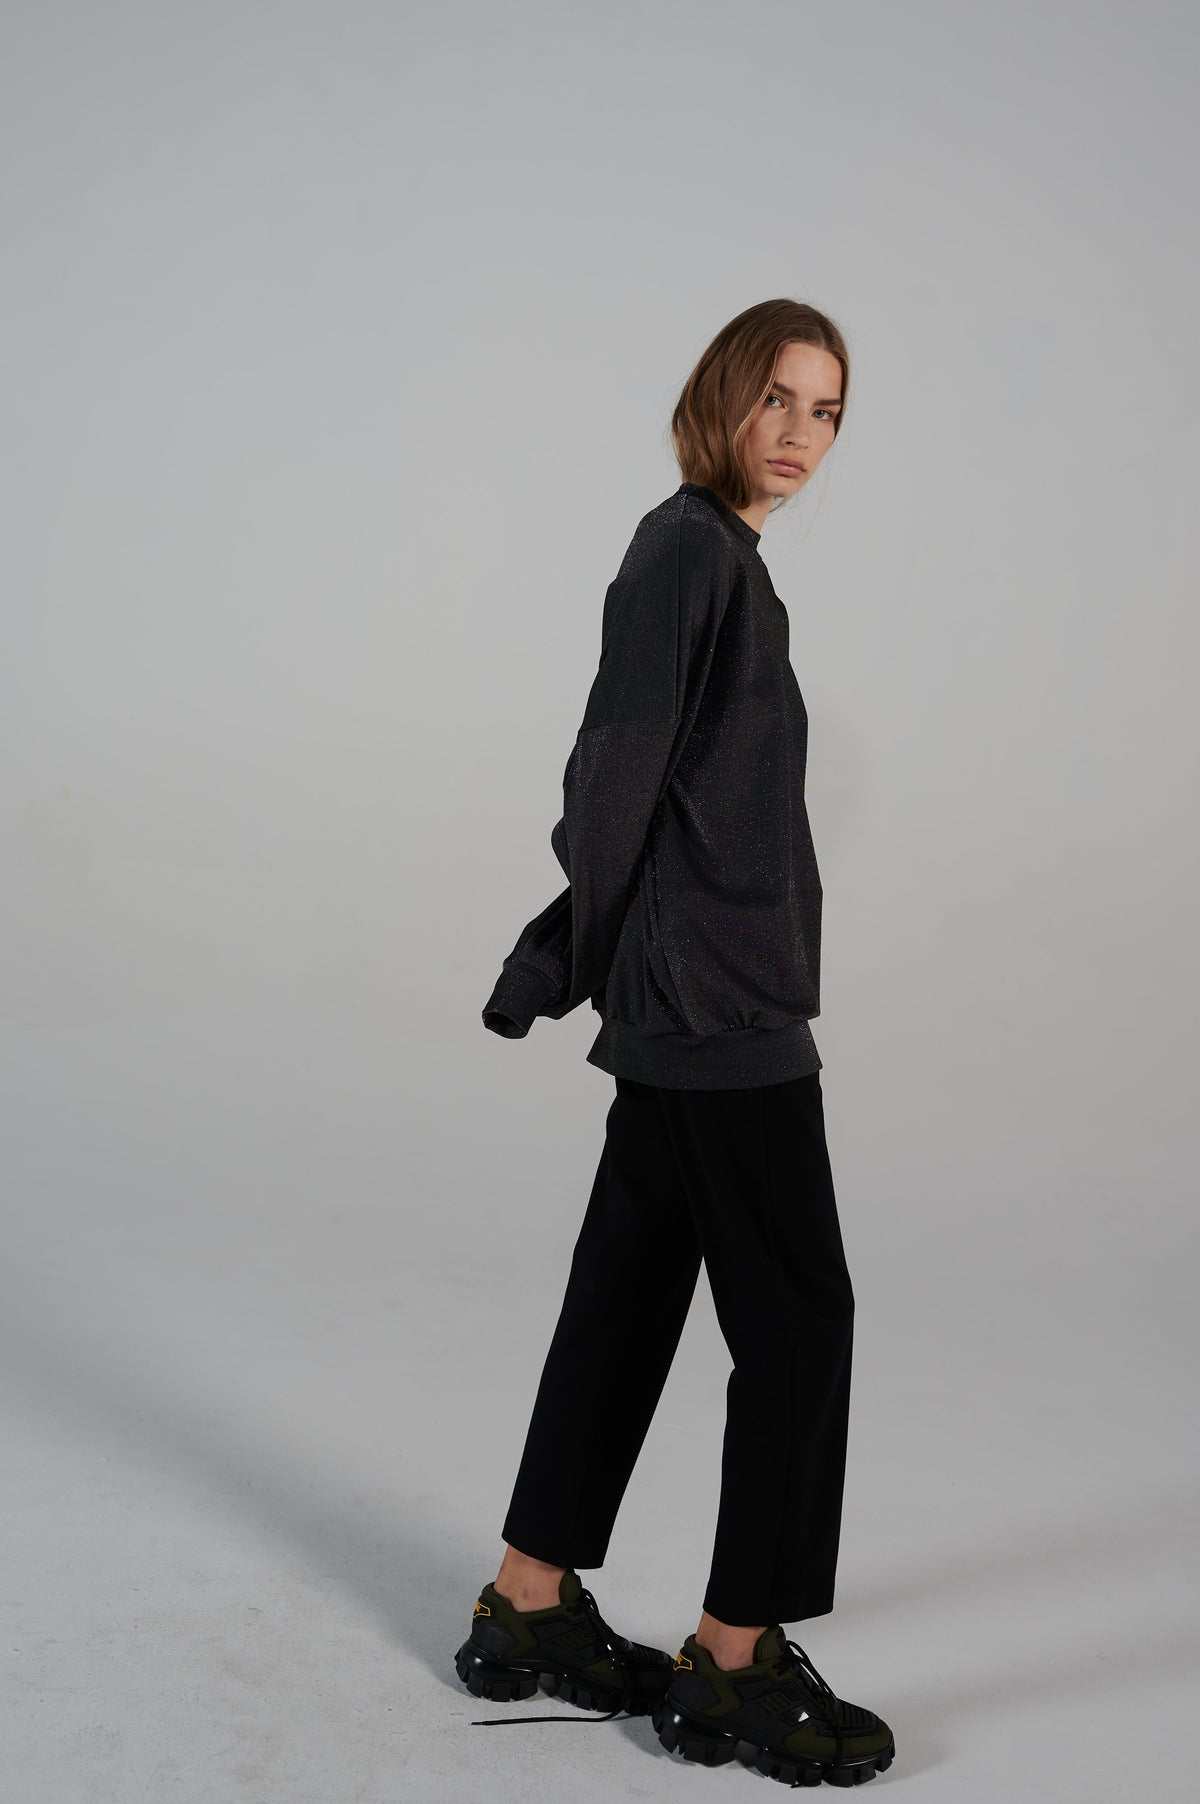 black-pants-le-slap-lounge-relaxed-fit-straight-leg-clothing.jpg